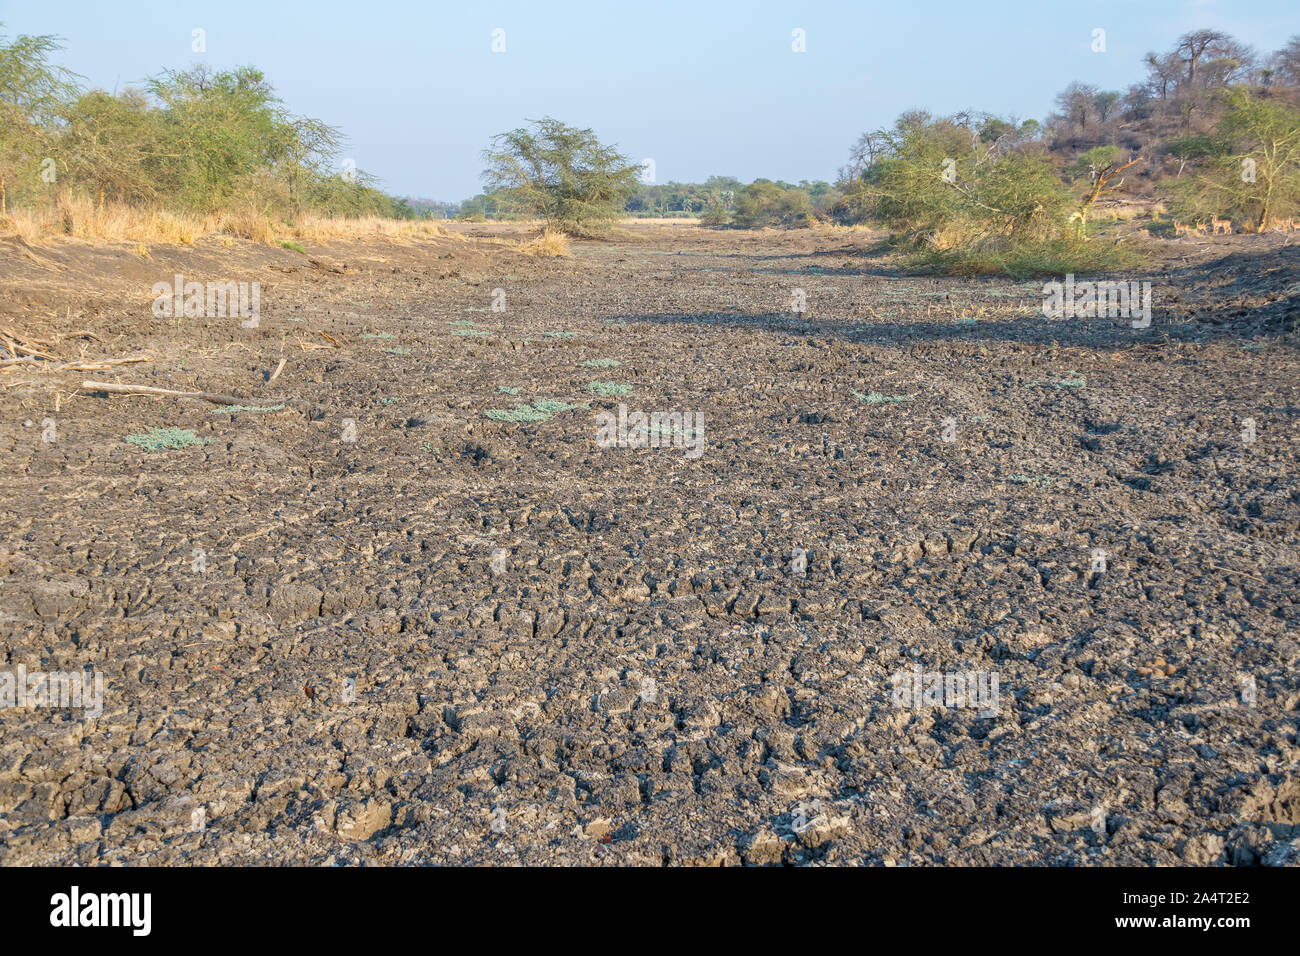 Dry flood plains of the Limpopo river in the northern Kruger National Park in South Africa image in landscape format with copy space Stock Photo